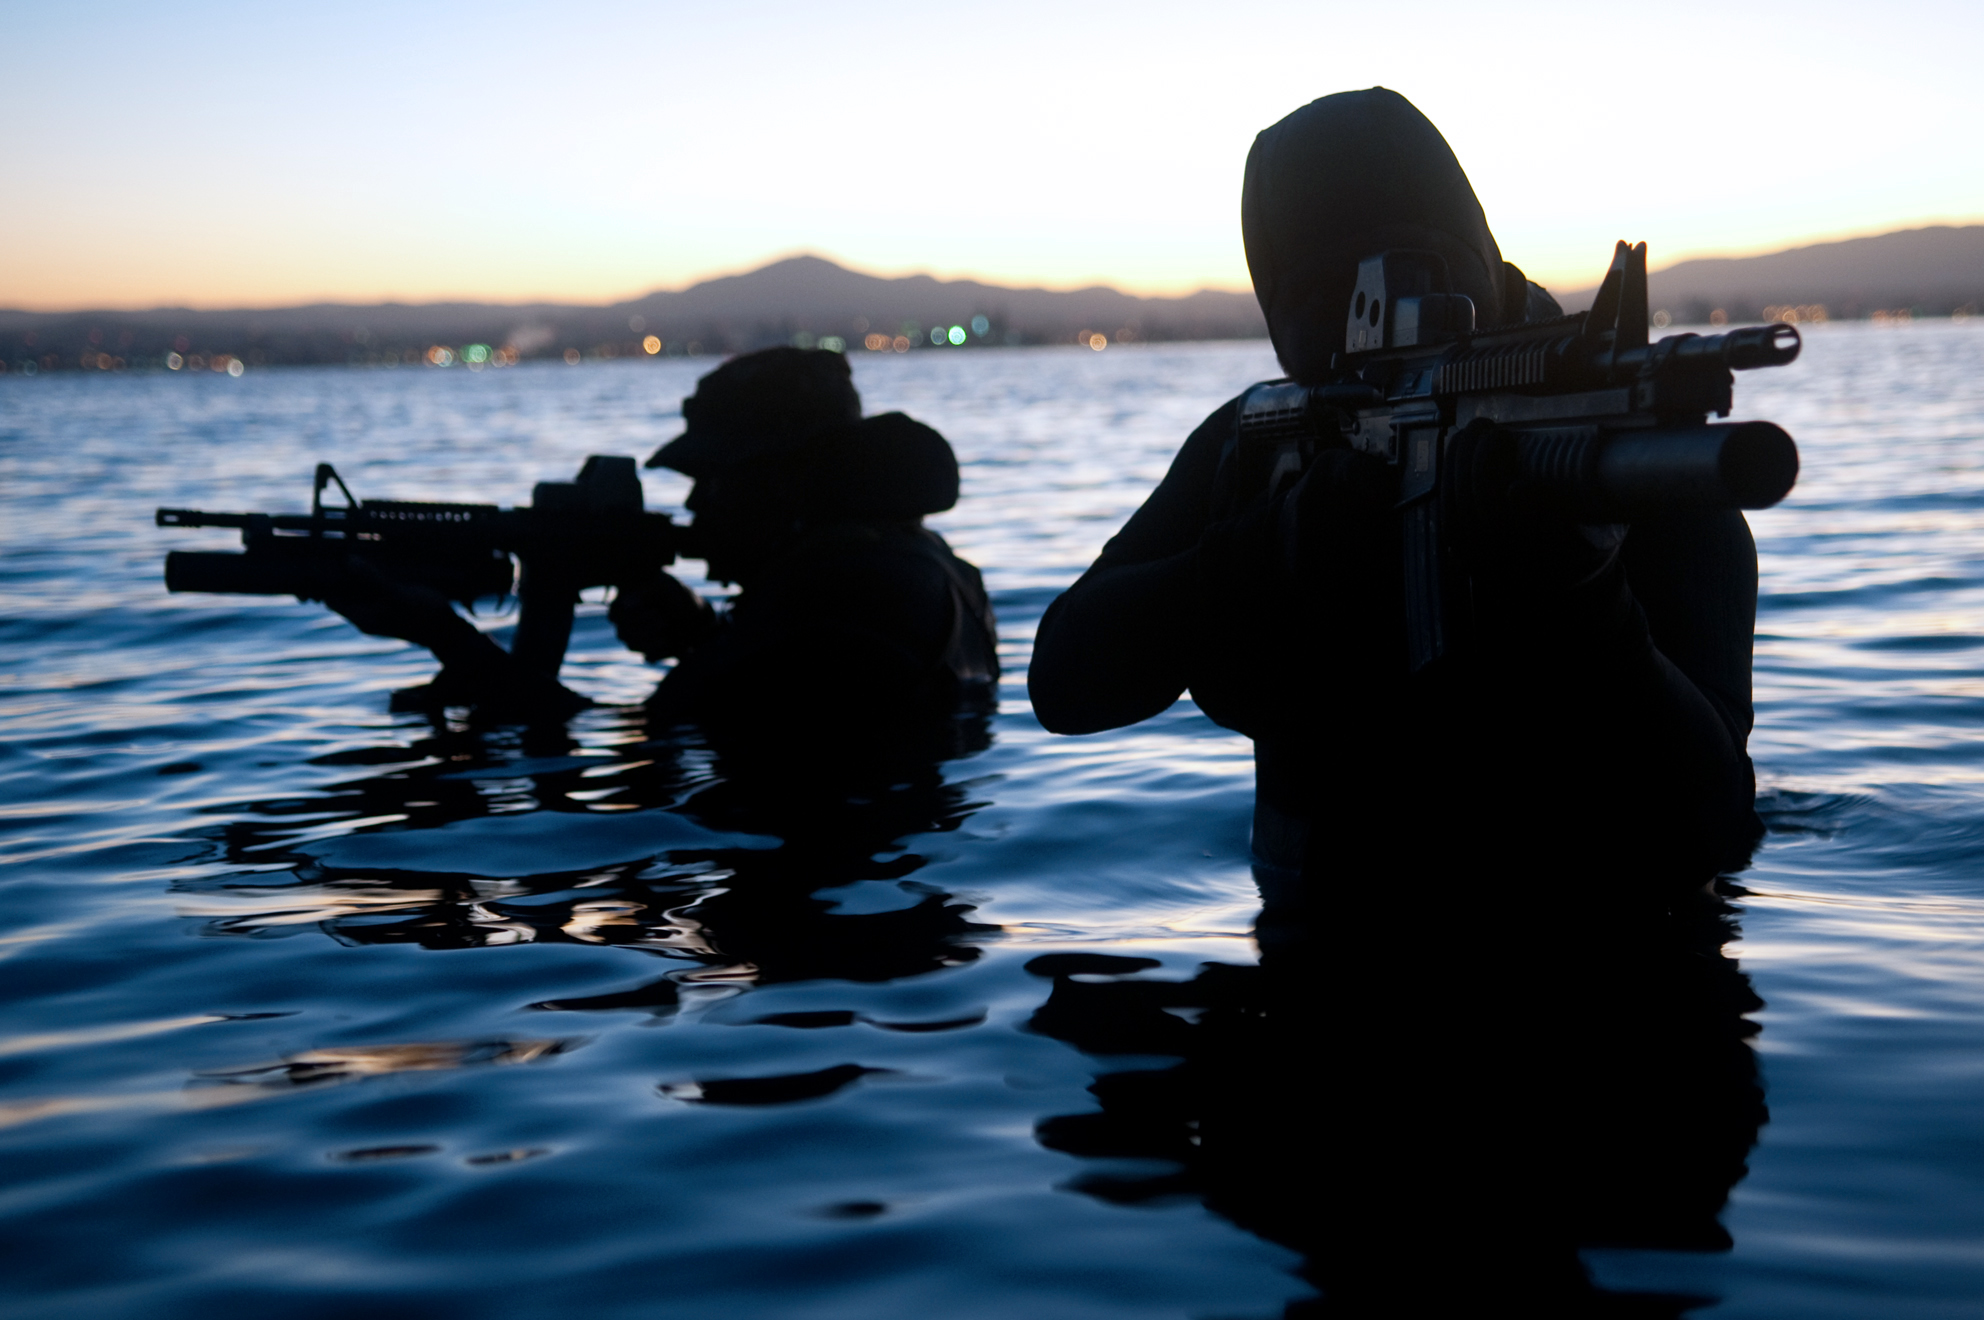 ... states navy seals The Only Easy Day Was Yesterday Wallpaper Navy Seals